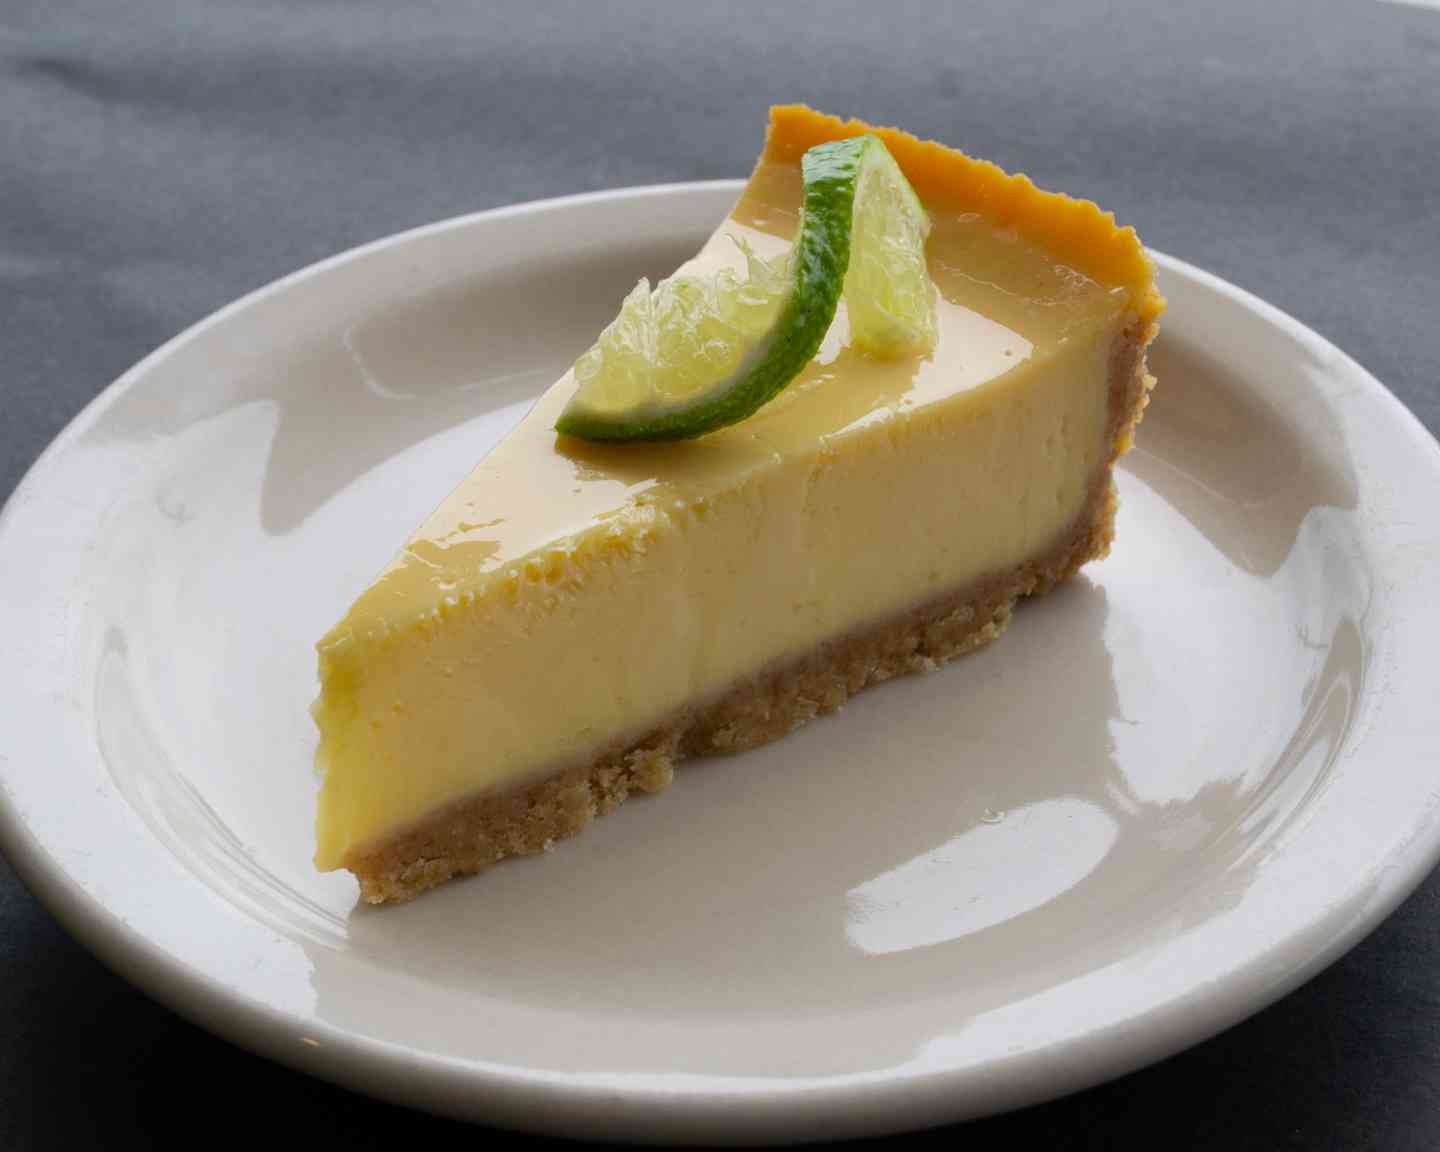 Siesta Key Lime Pie